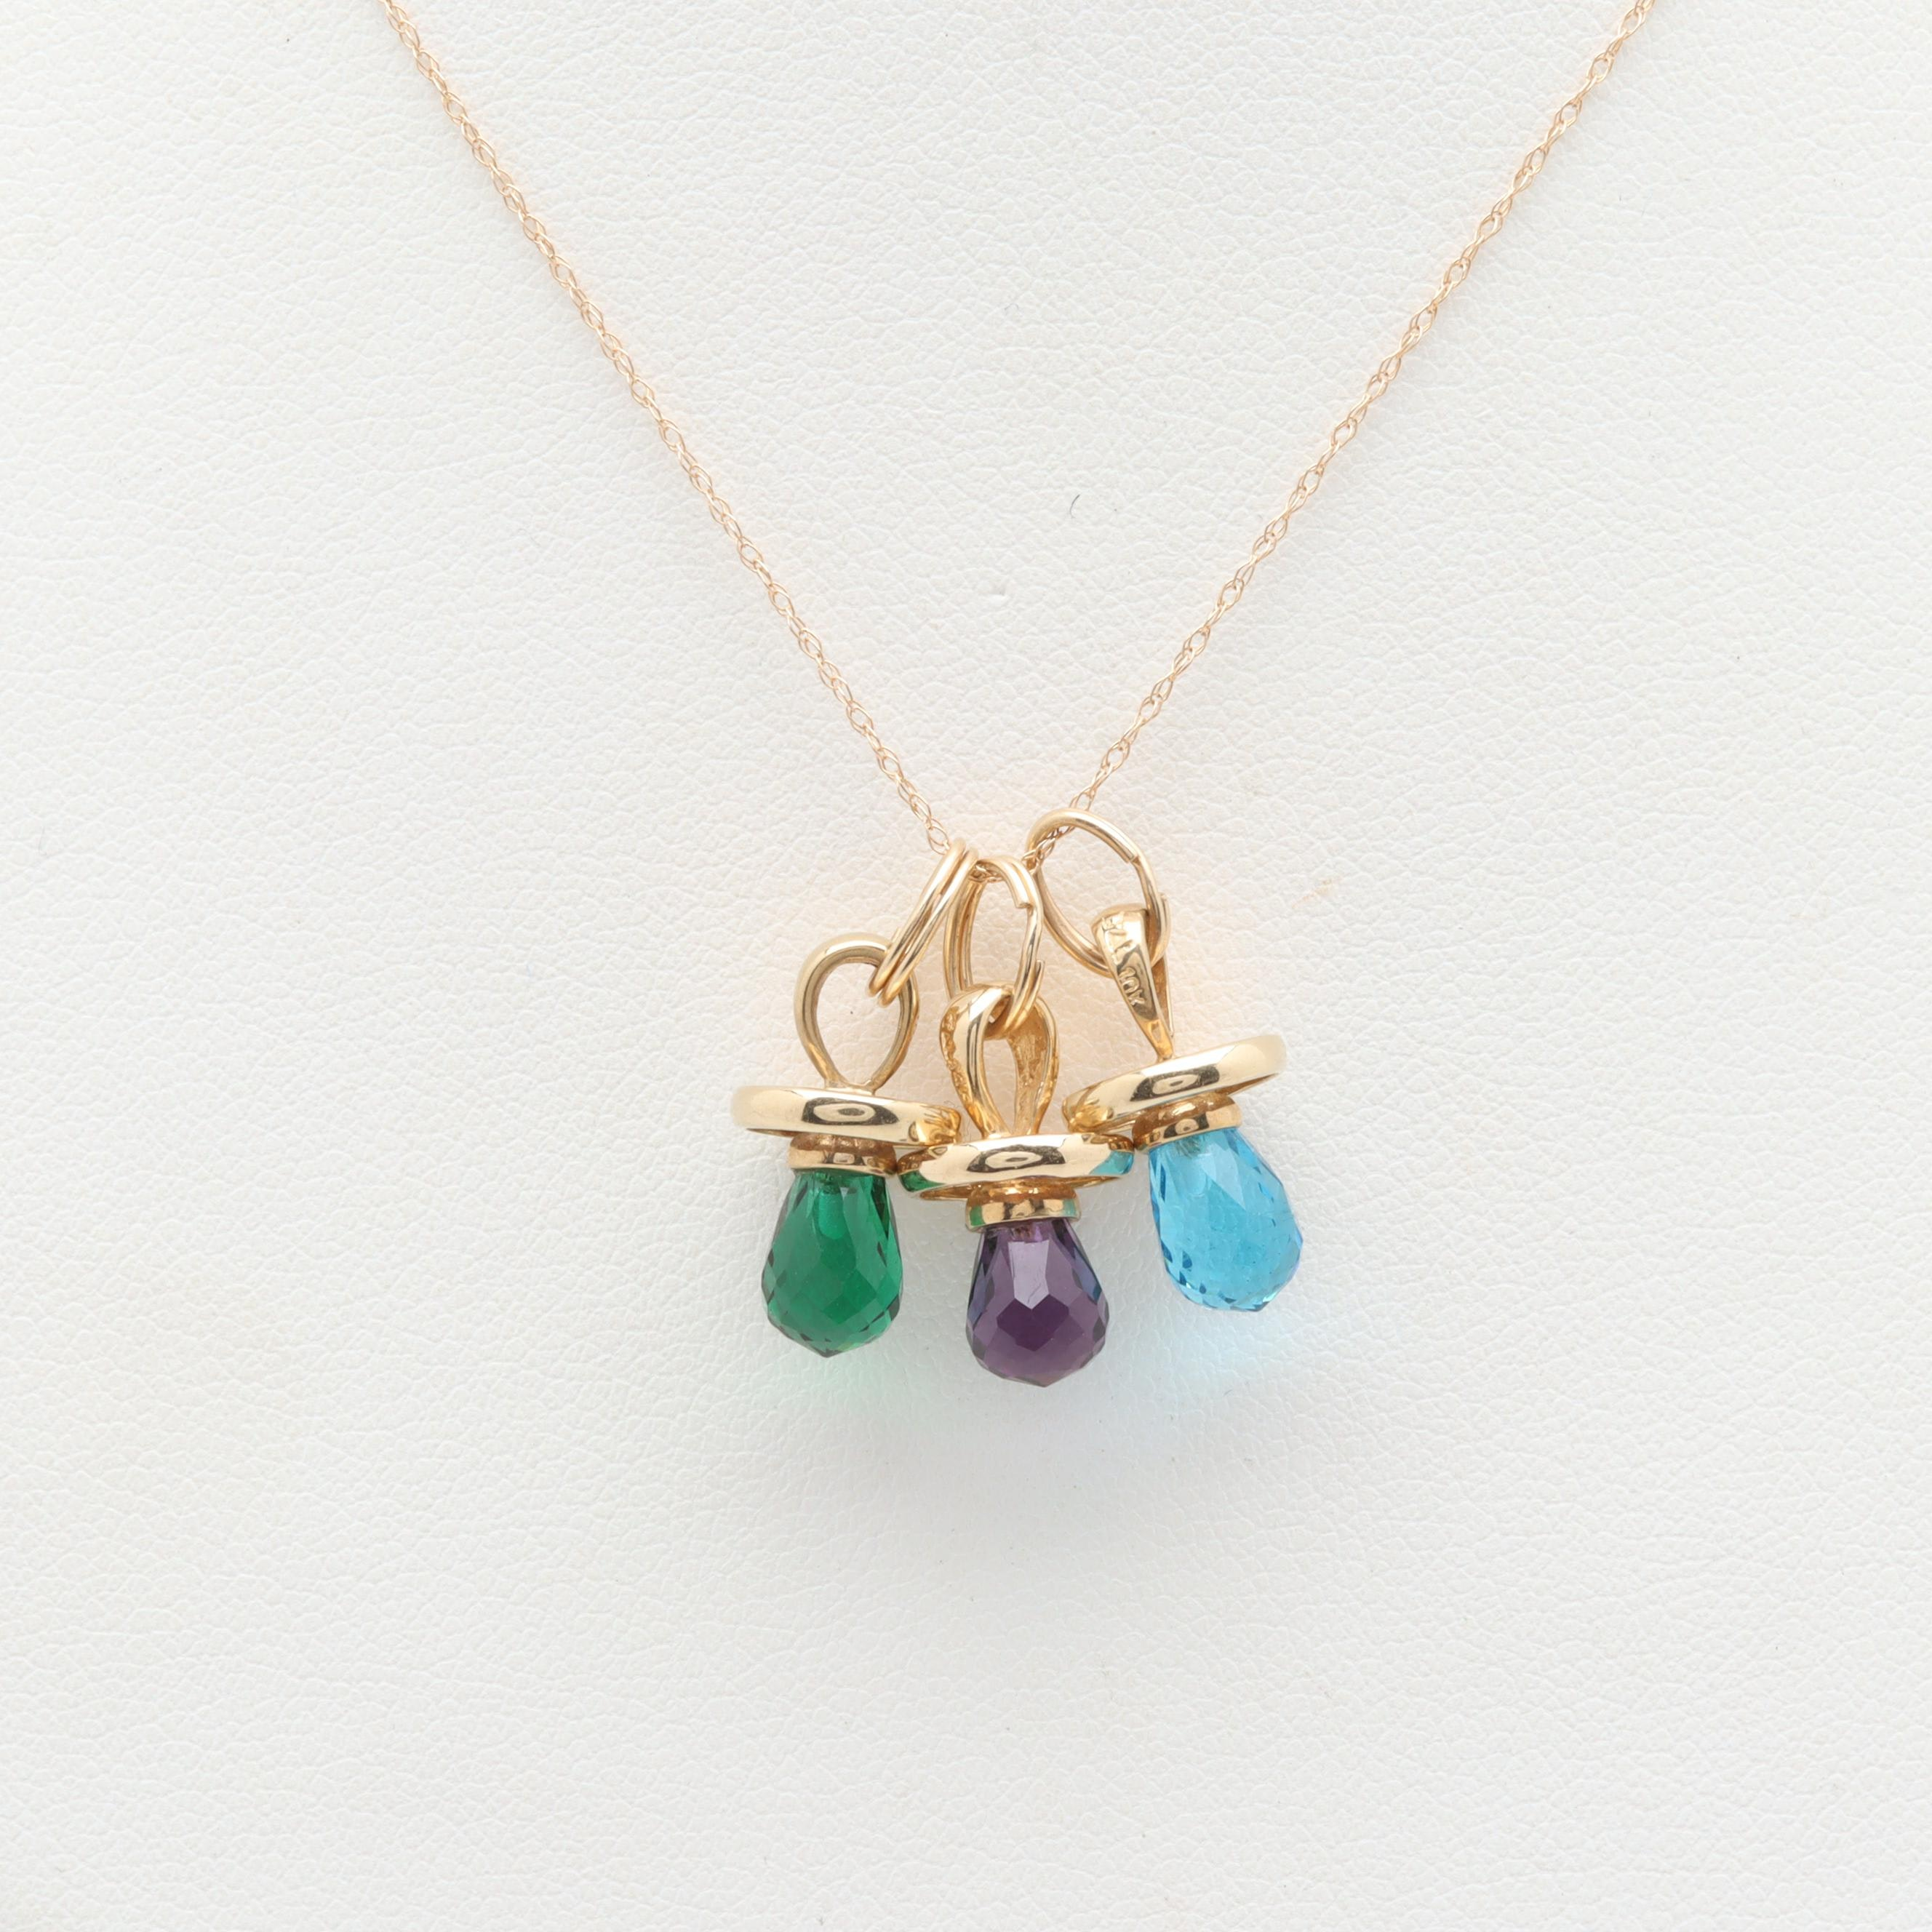 10K and 14K Yellow Gold Amethyst and Glass Charm Pendant Necklace